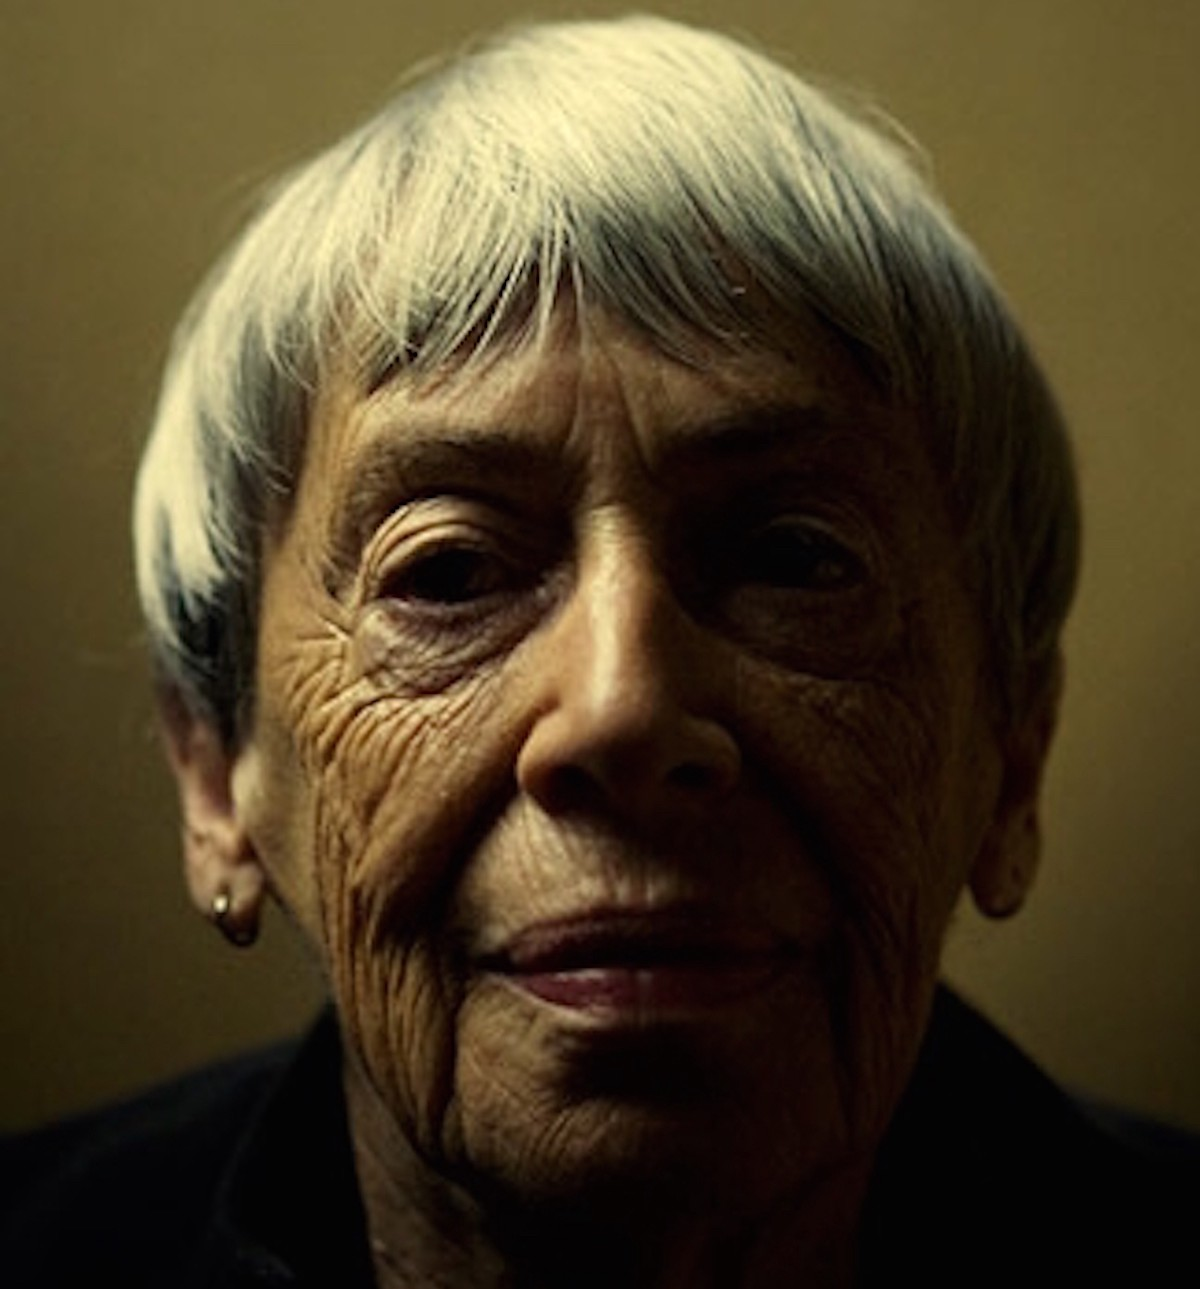 Narrative Essay Sample Papers What A Littleknown Ursula K Le Guin Essay Taught Me About Being A Woman Health Promotion Essay also Learn English Essay What A Littleknown Ursula K Le Guin Essay Taught Me About Being A  High School Experience Essay